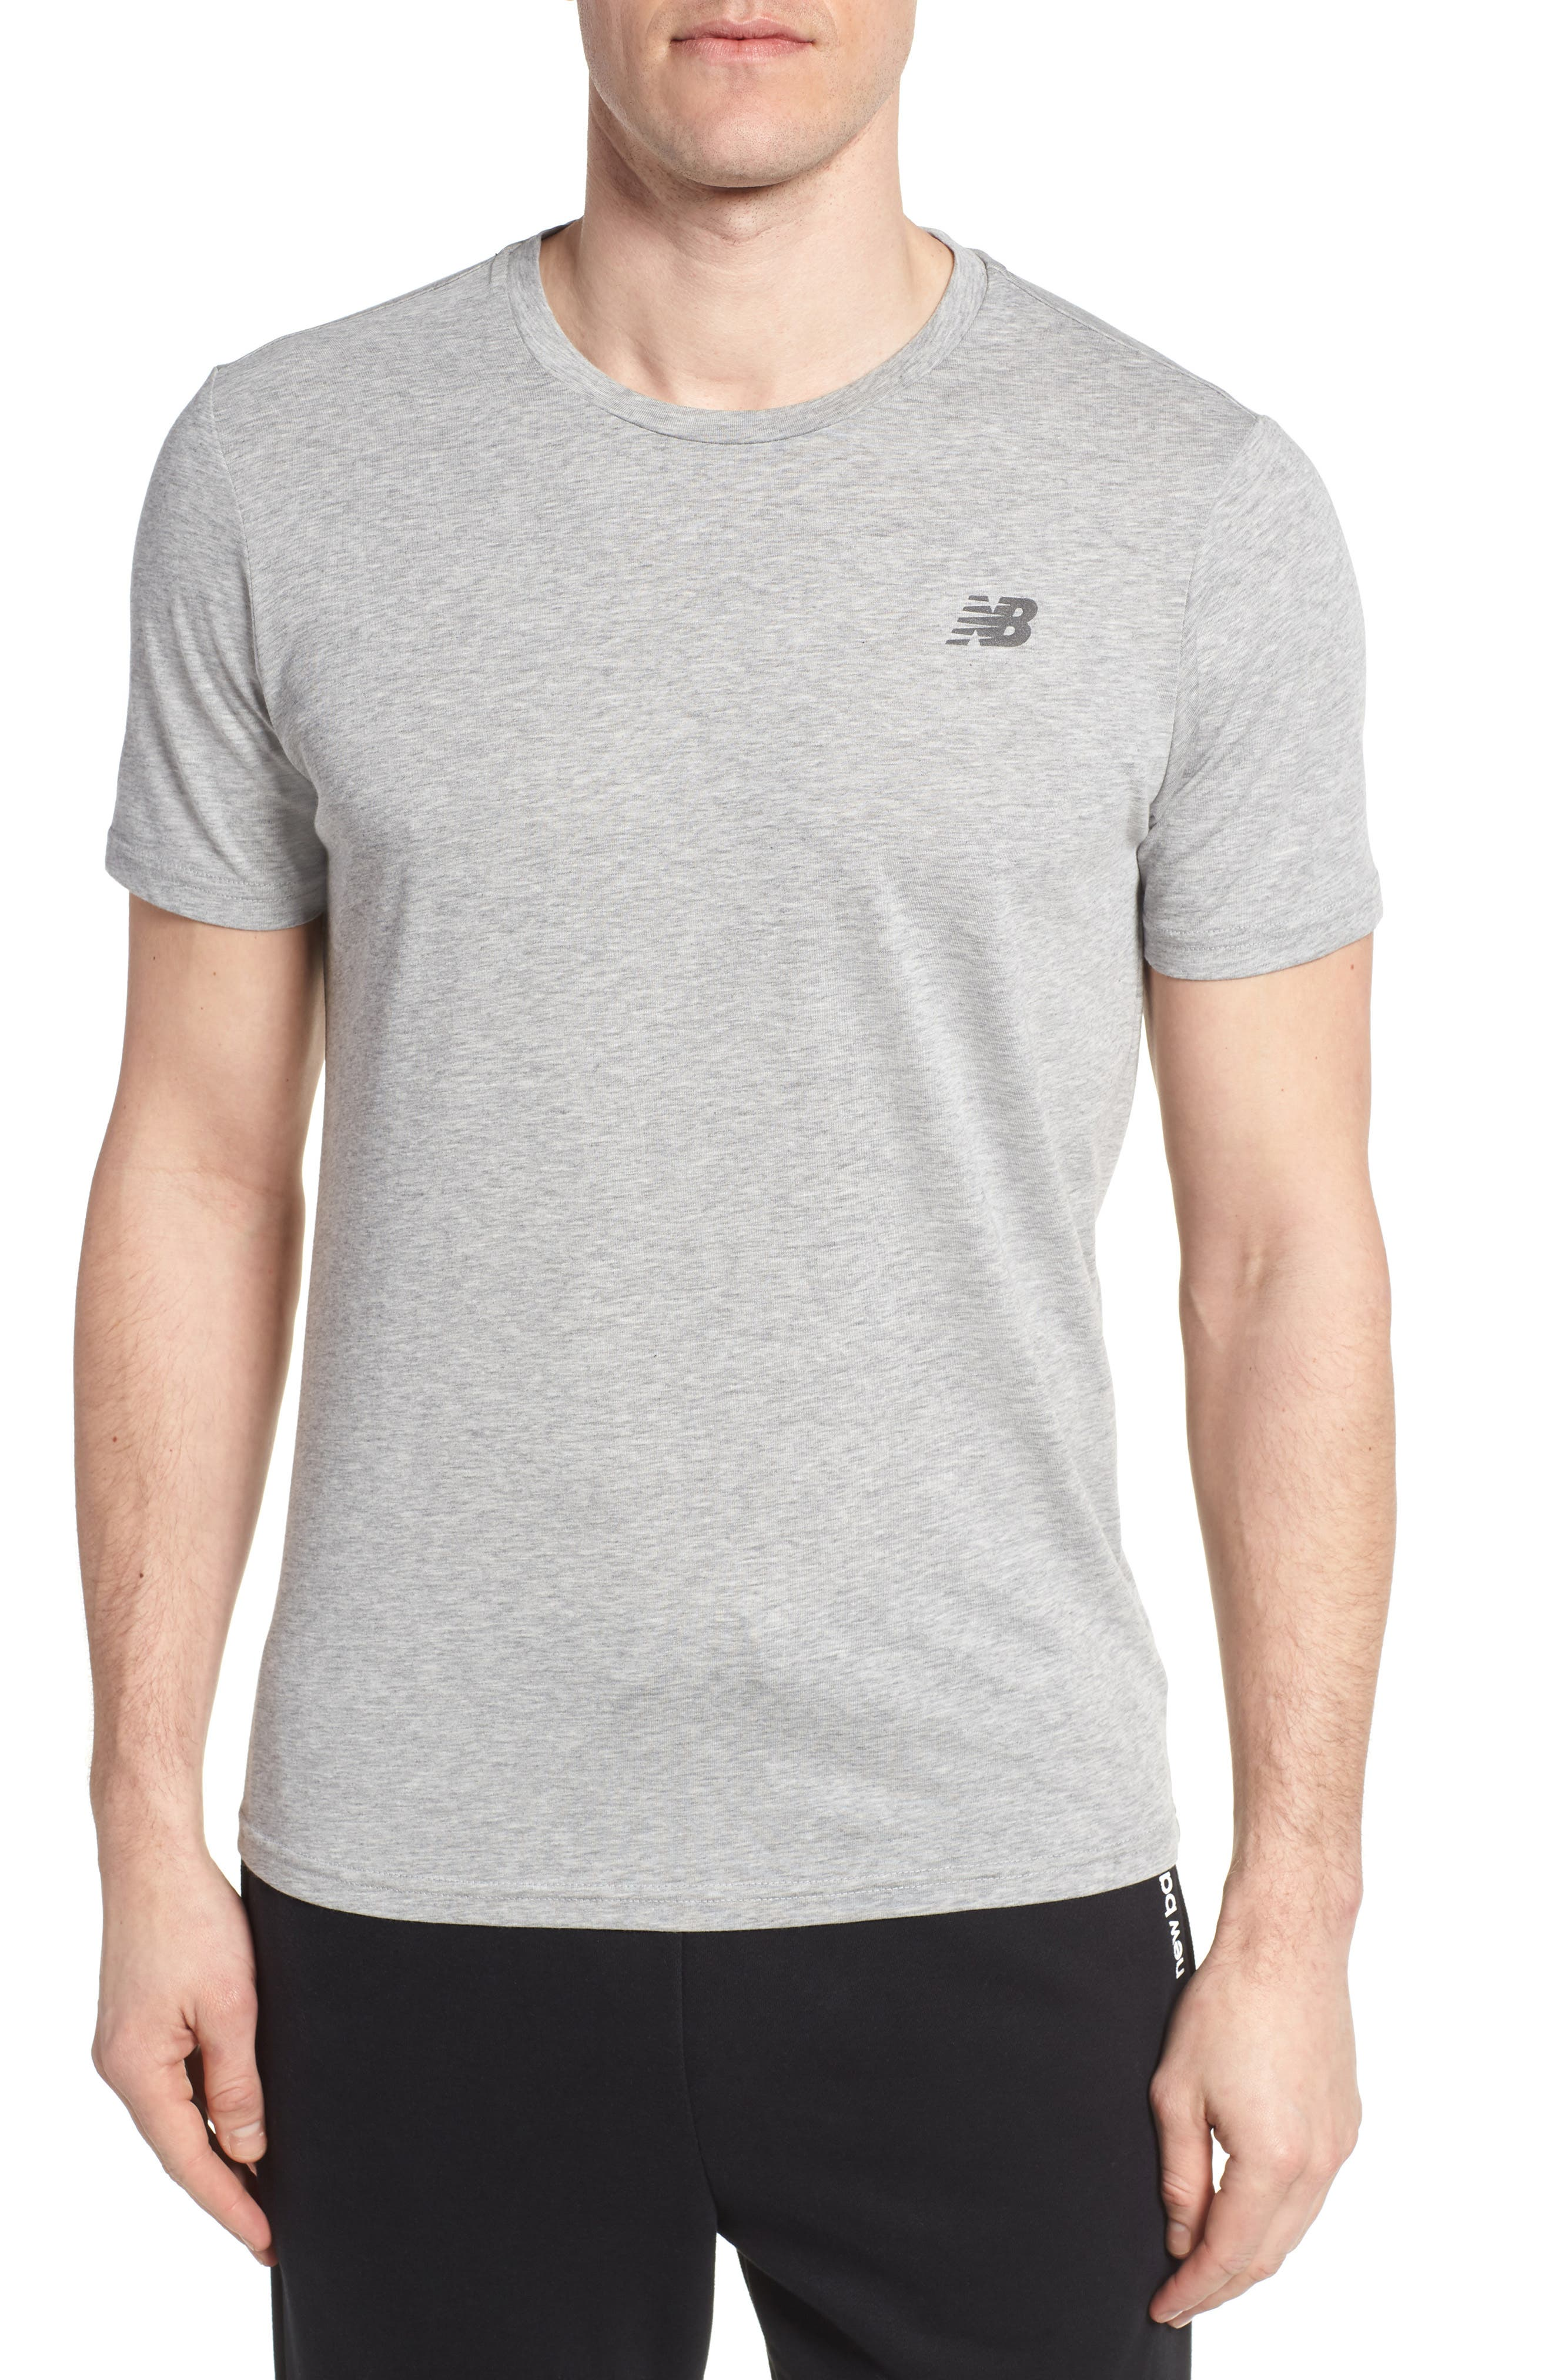 New Balance Heather Tech Crewneck T-Shirt